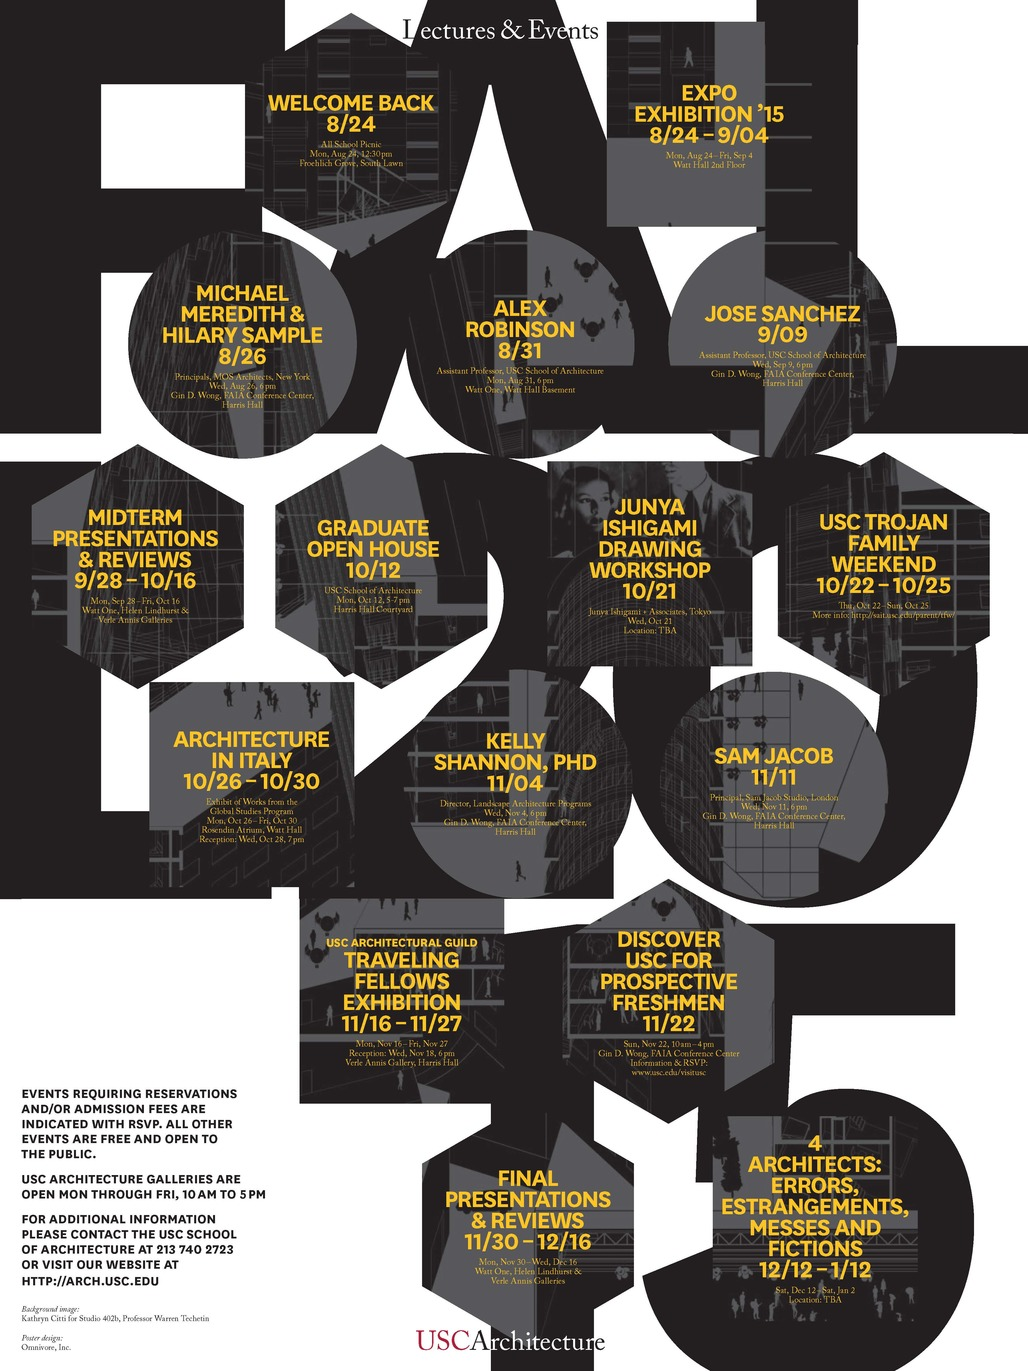 USC School of Architecture Fall 2015 Lectures and Events. Background image: Kathryn Citti for Studio 402b, Professor Warren Techetin. Poster design: Omnivore, Inc.